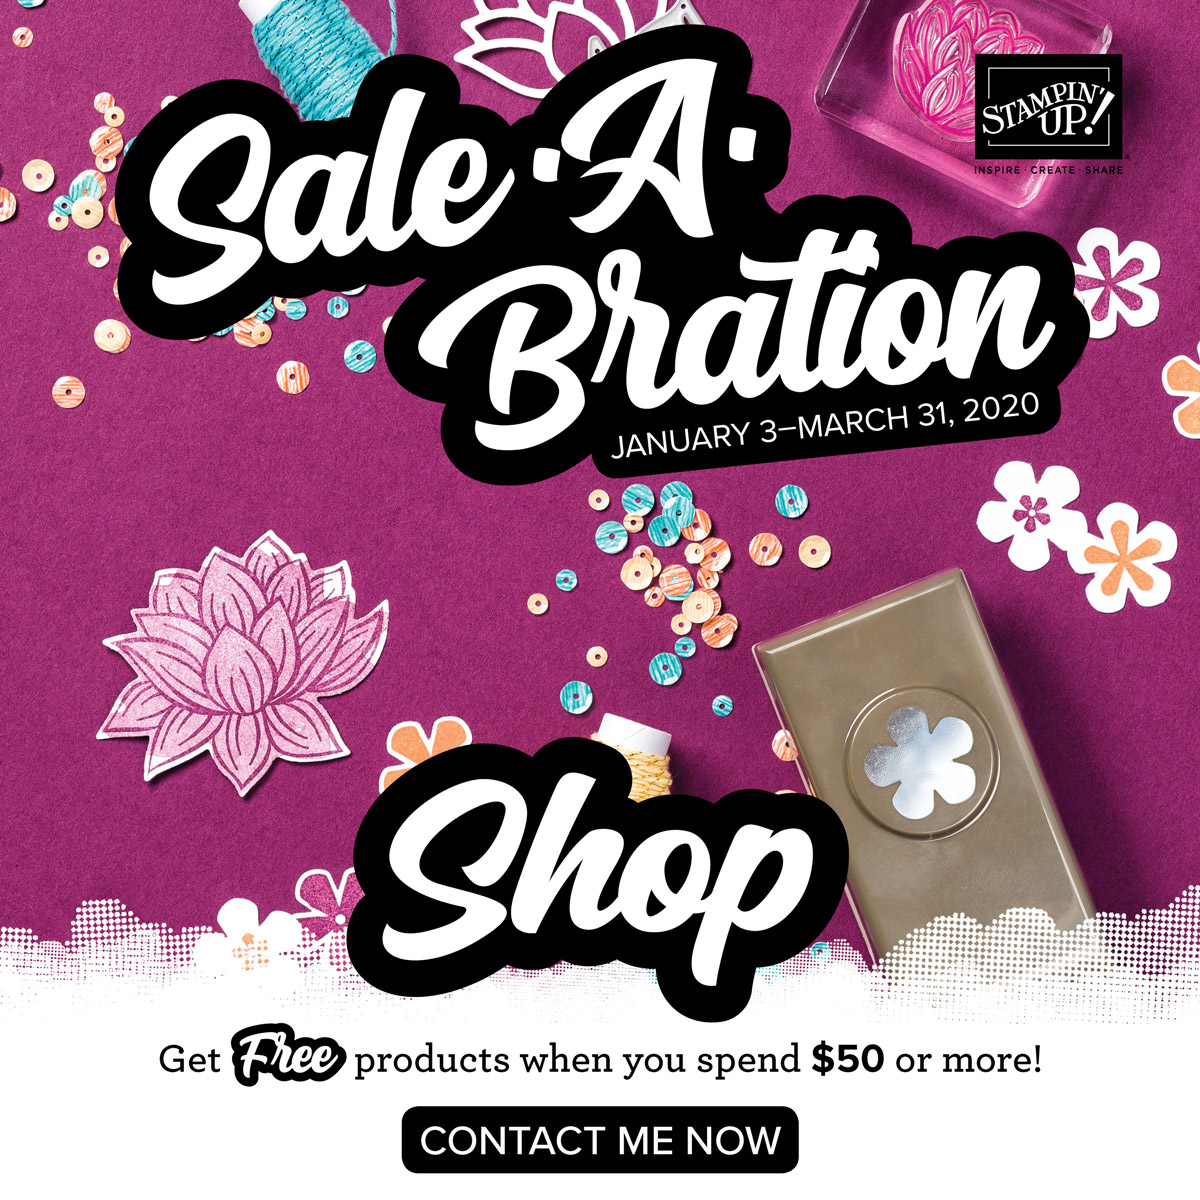 Beginning January 3, 2020 with a min. $50.00 order you can choose 1 item from the Sale-a-bration Brochure for FREE. Details on my blog here: